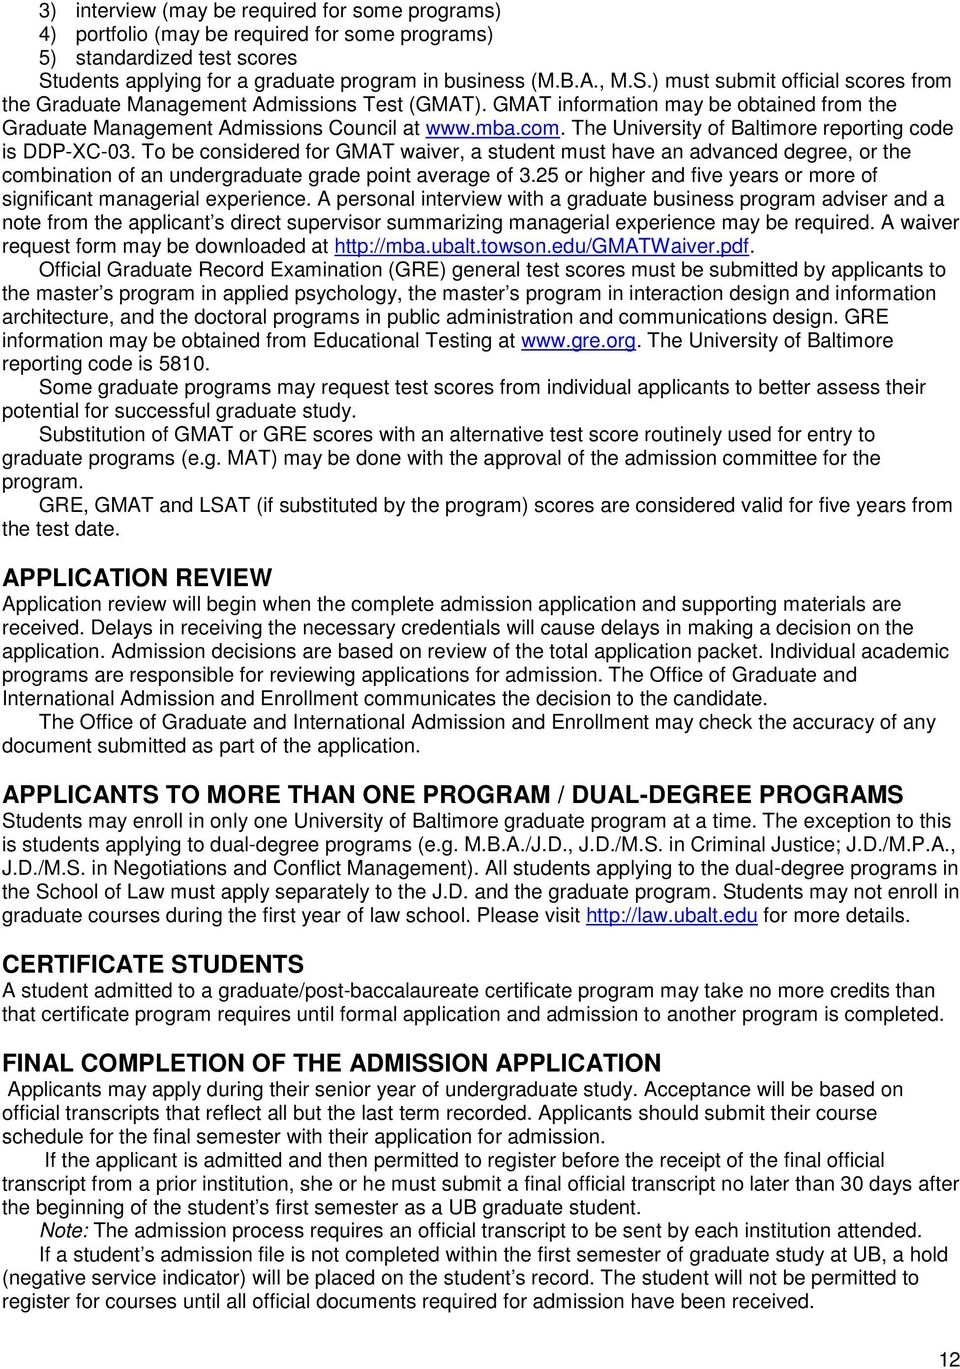 GMAT information may be obtained from the Graduate Management Admissions Council at www.mba.com. The University of Baltimore reporting code is DDP-XC-03.